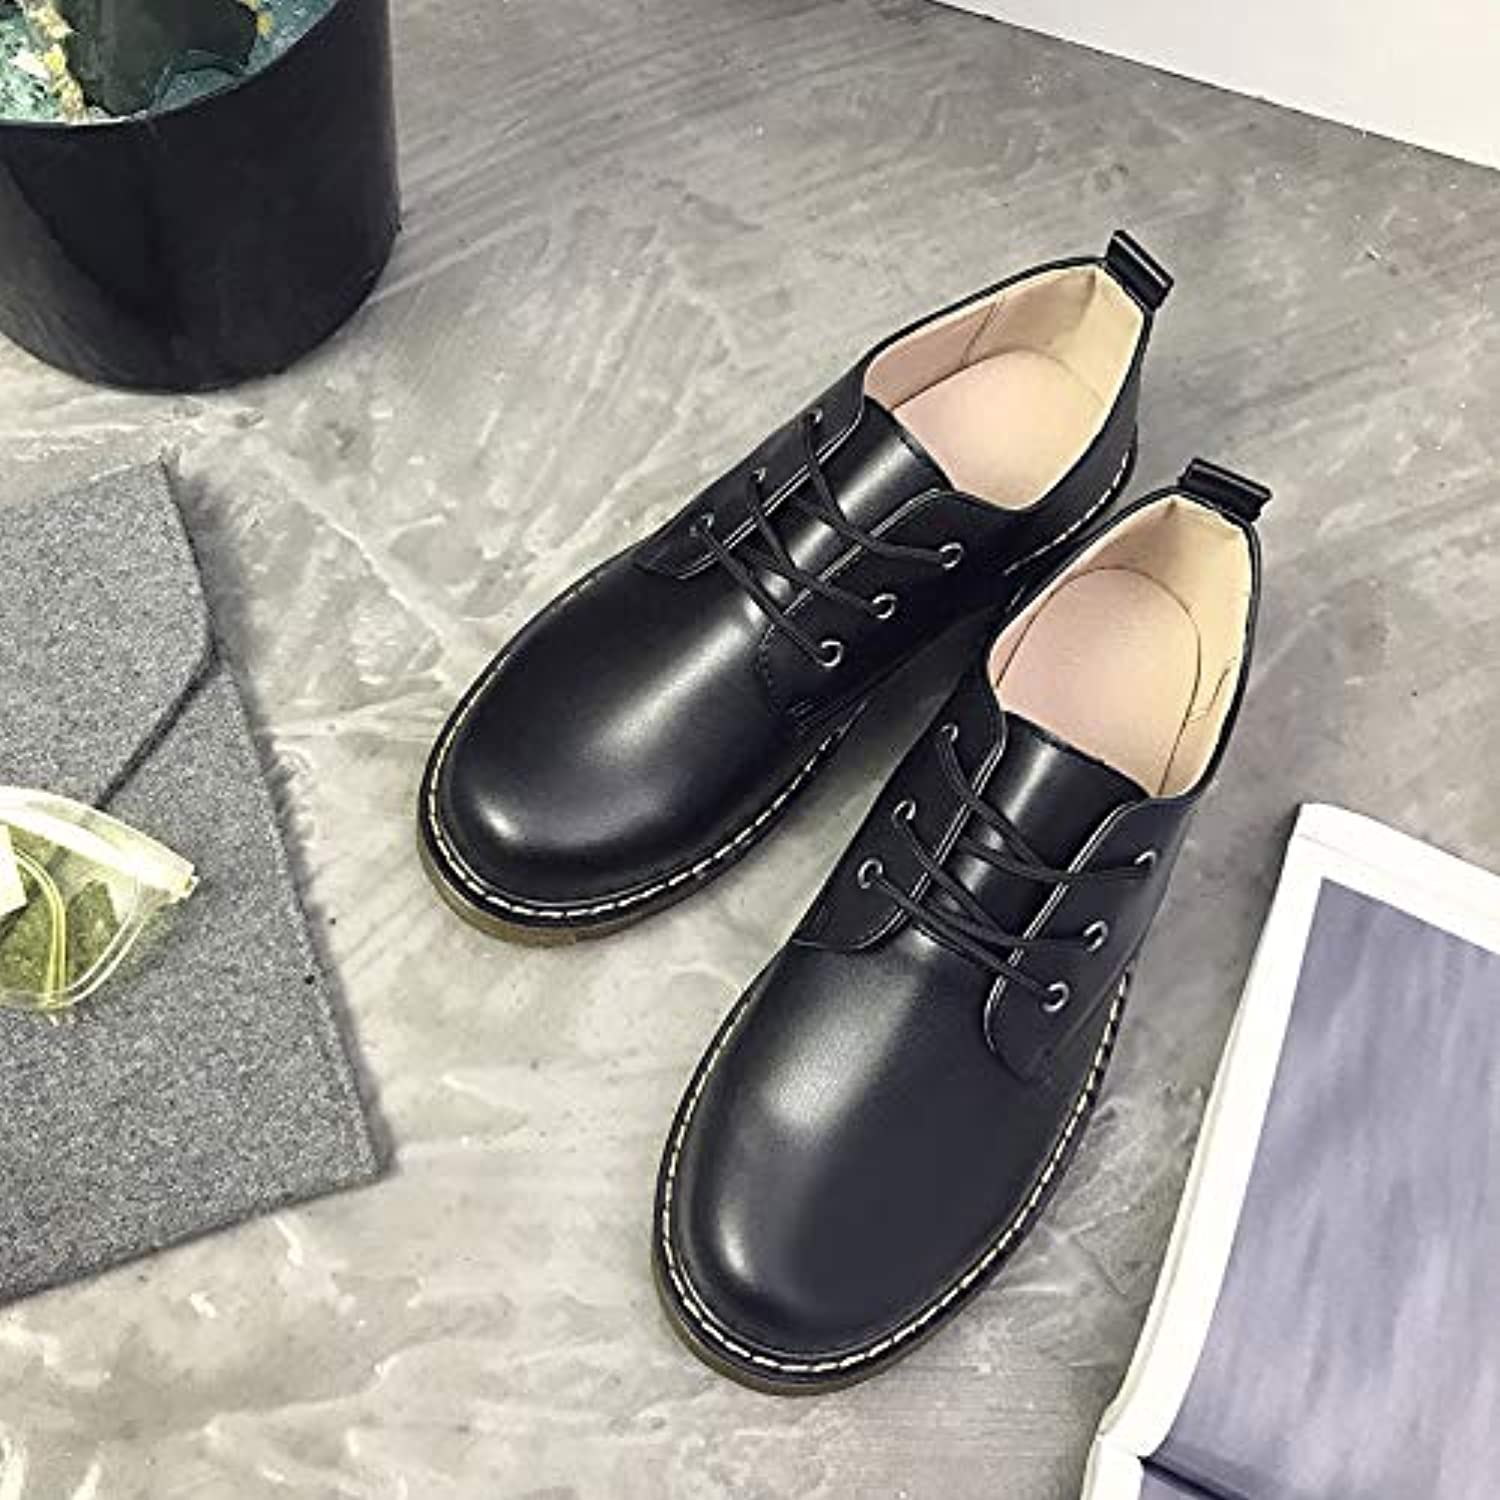 LOVDRAM Boots Men's Men'S shoes Retro Round Head Low To Help Cotton shoes Martin Boots Students